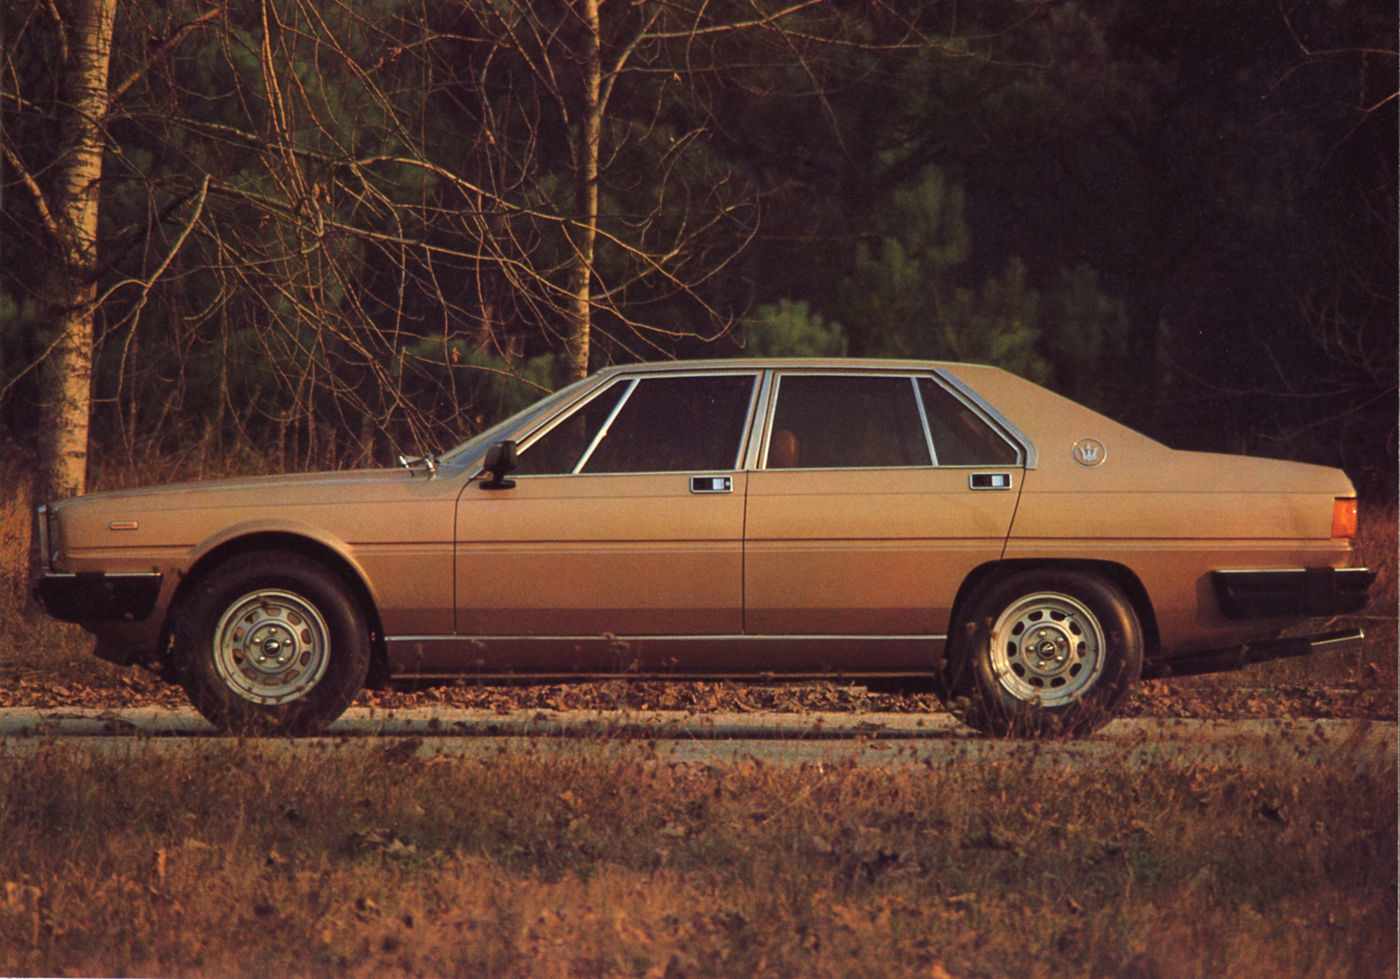 1978 Maserati Quattroporte III - exterior view of the classic 5-seater sedan